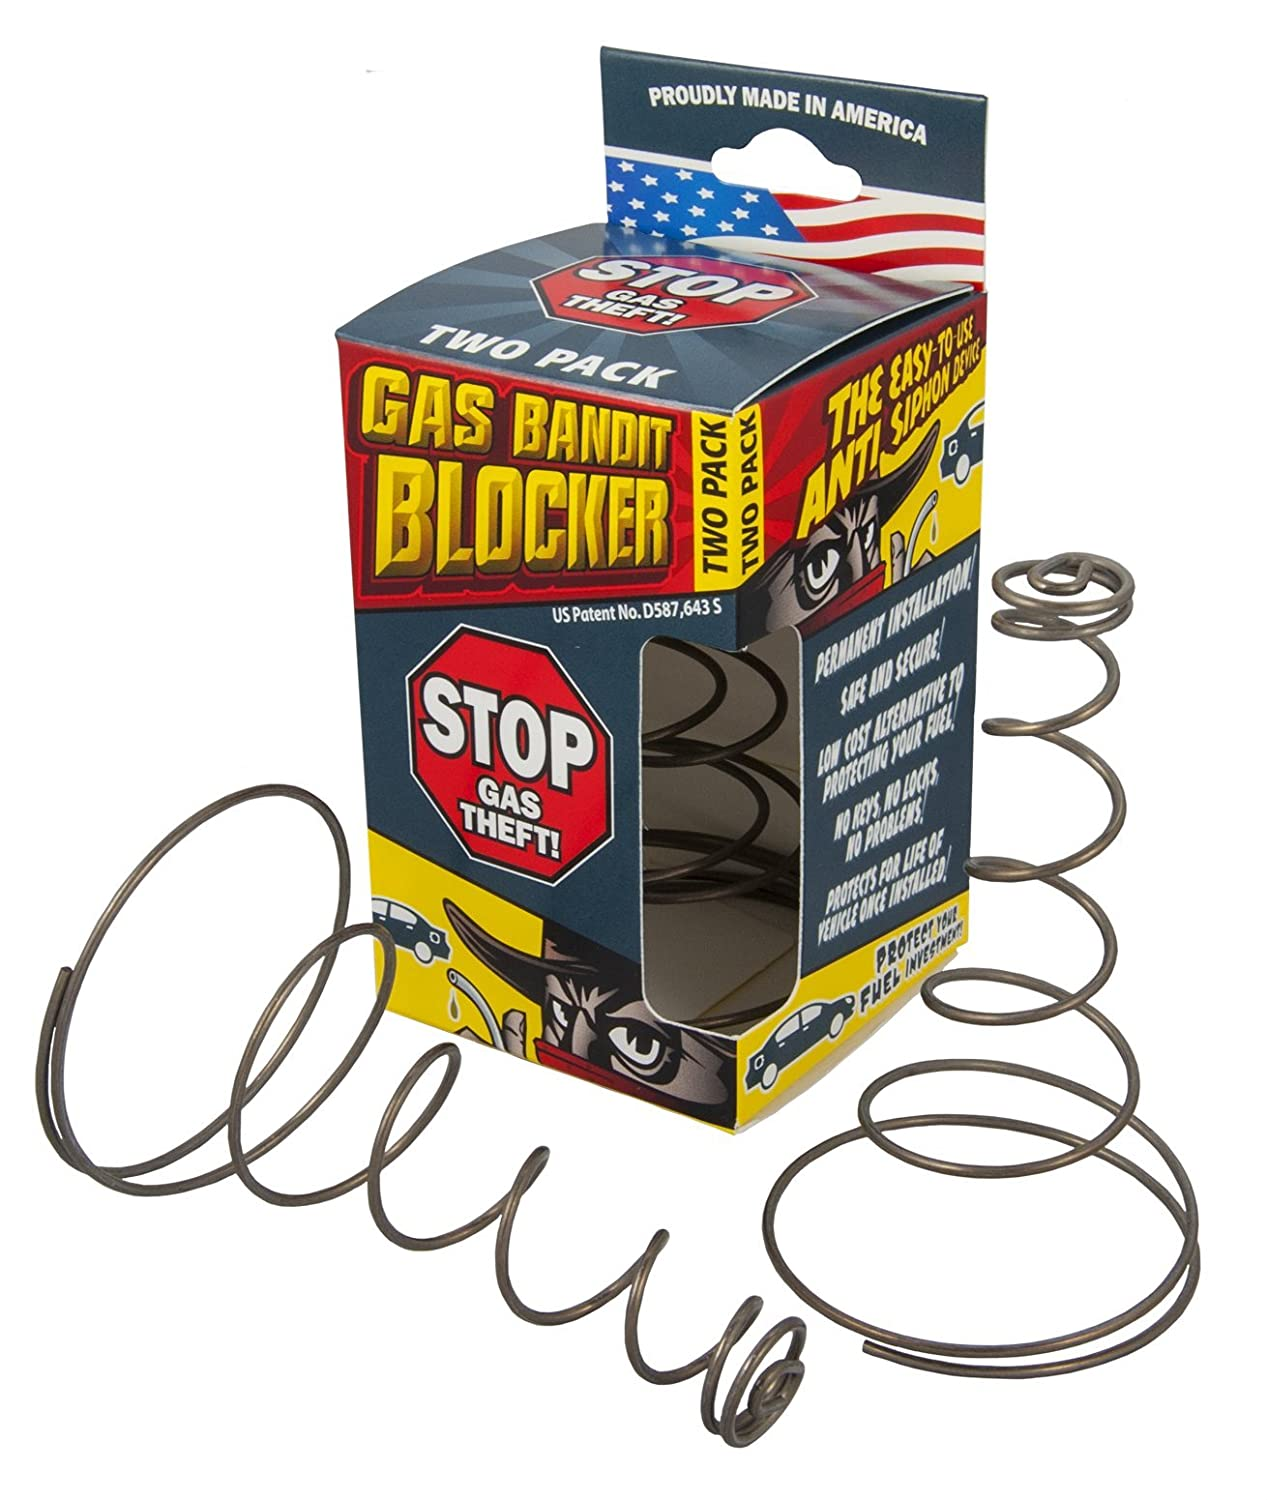 Stanco Gas Bandit Blocker - Fuel Anti-Siphon Device 2-Pack GBB-01